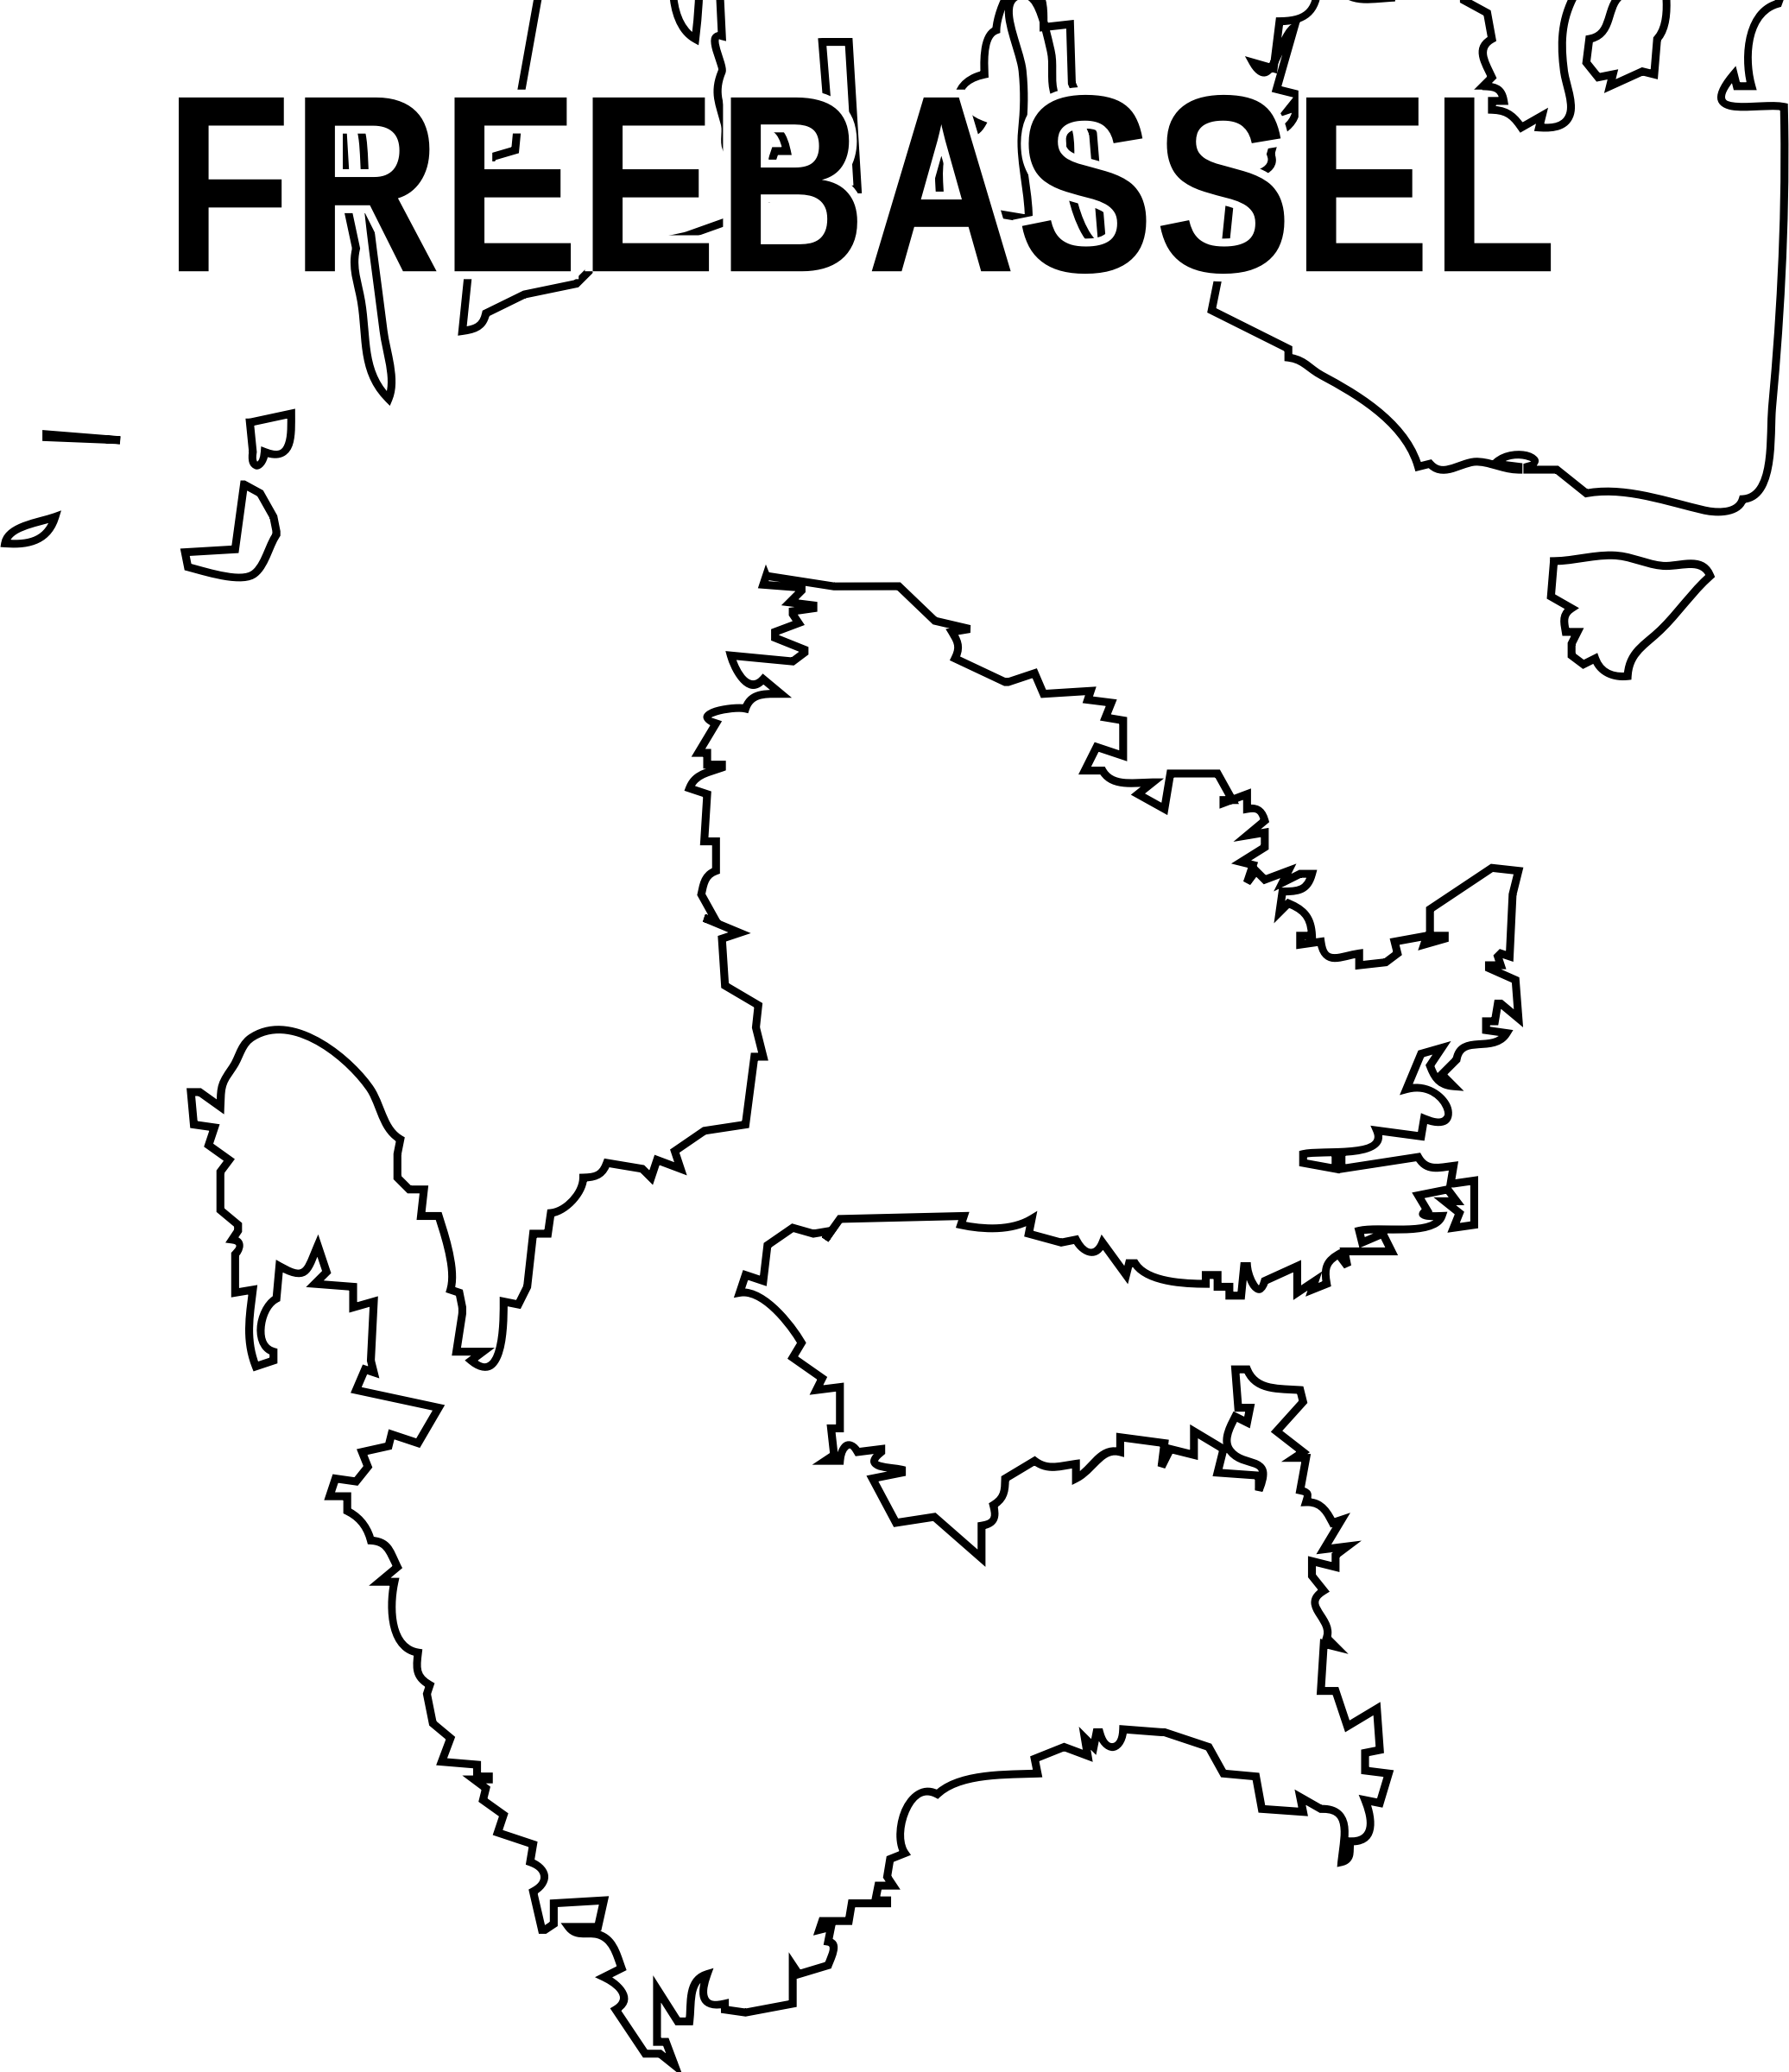 FREEBASSEL REMEMBER OUT CONVERTED by rejon